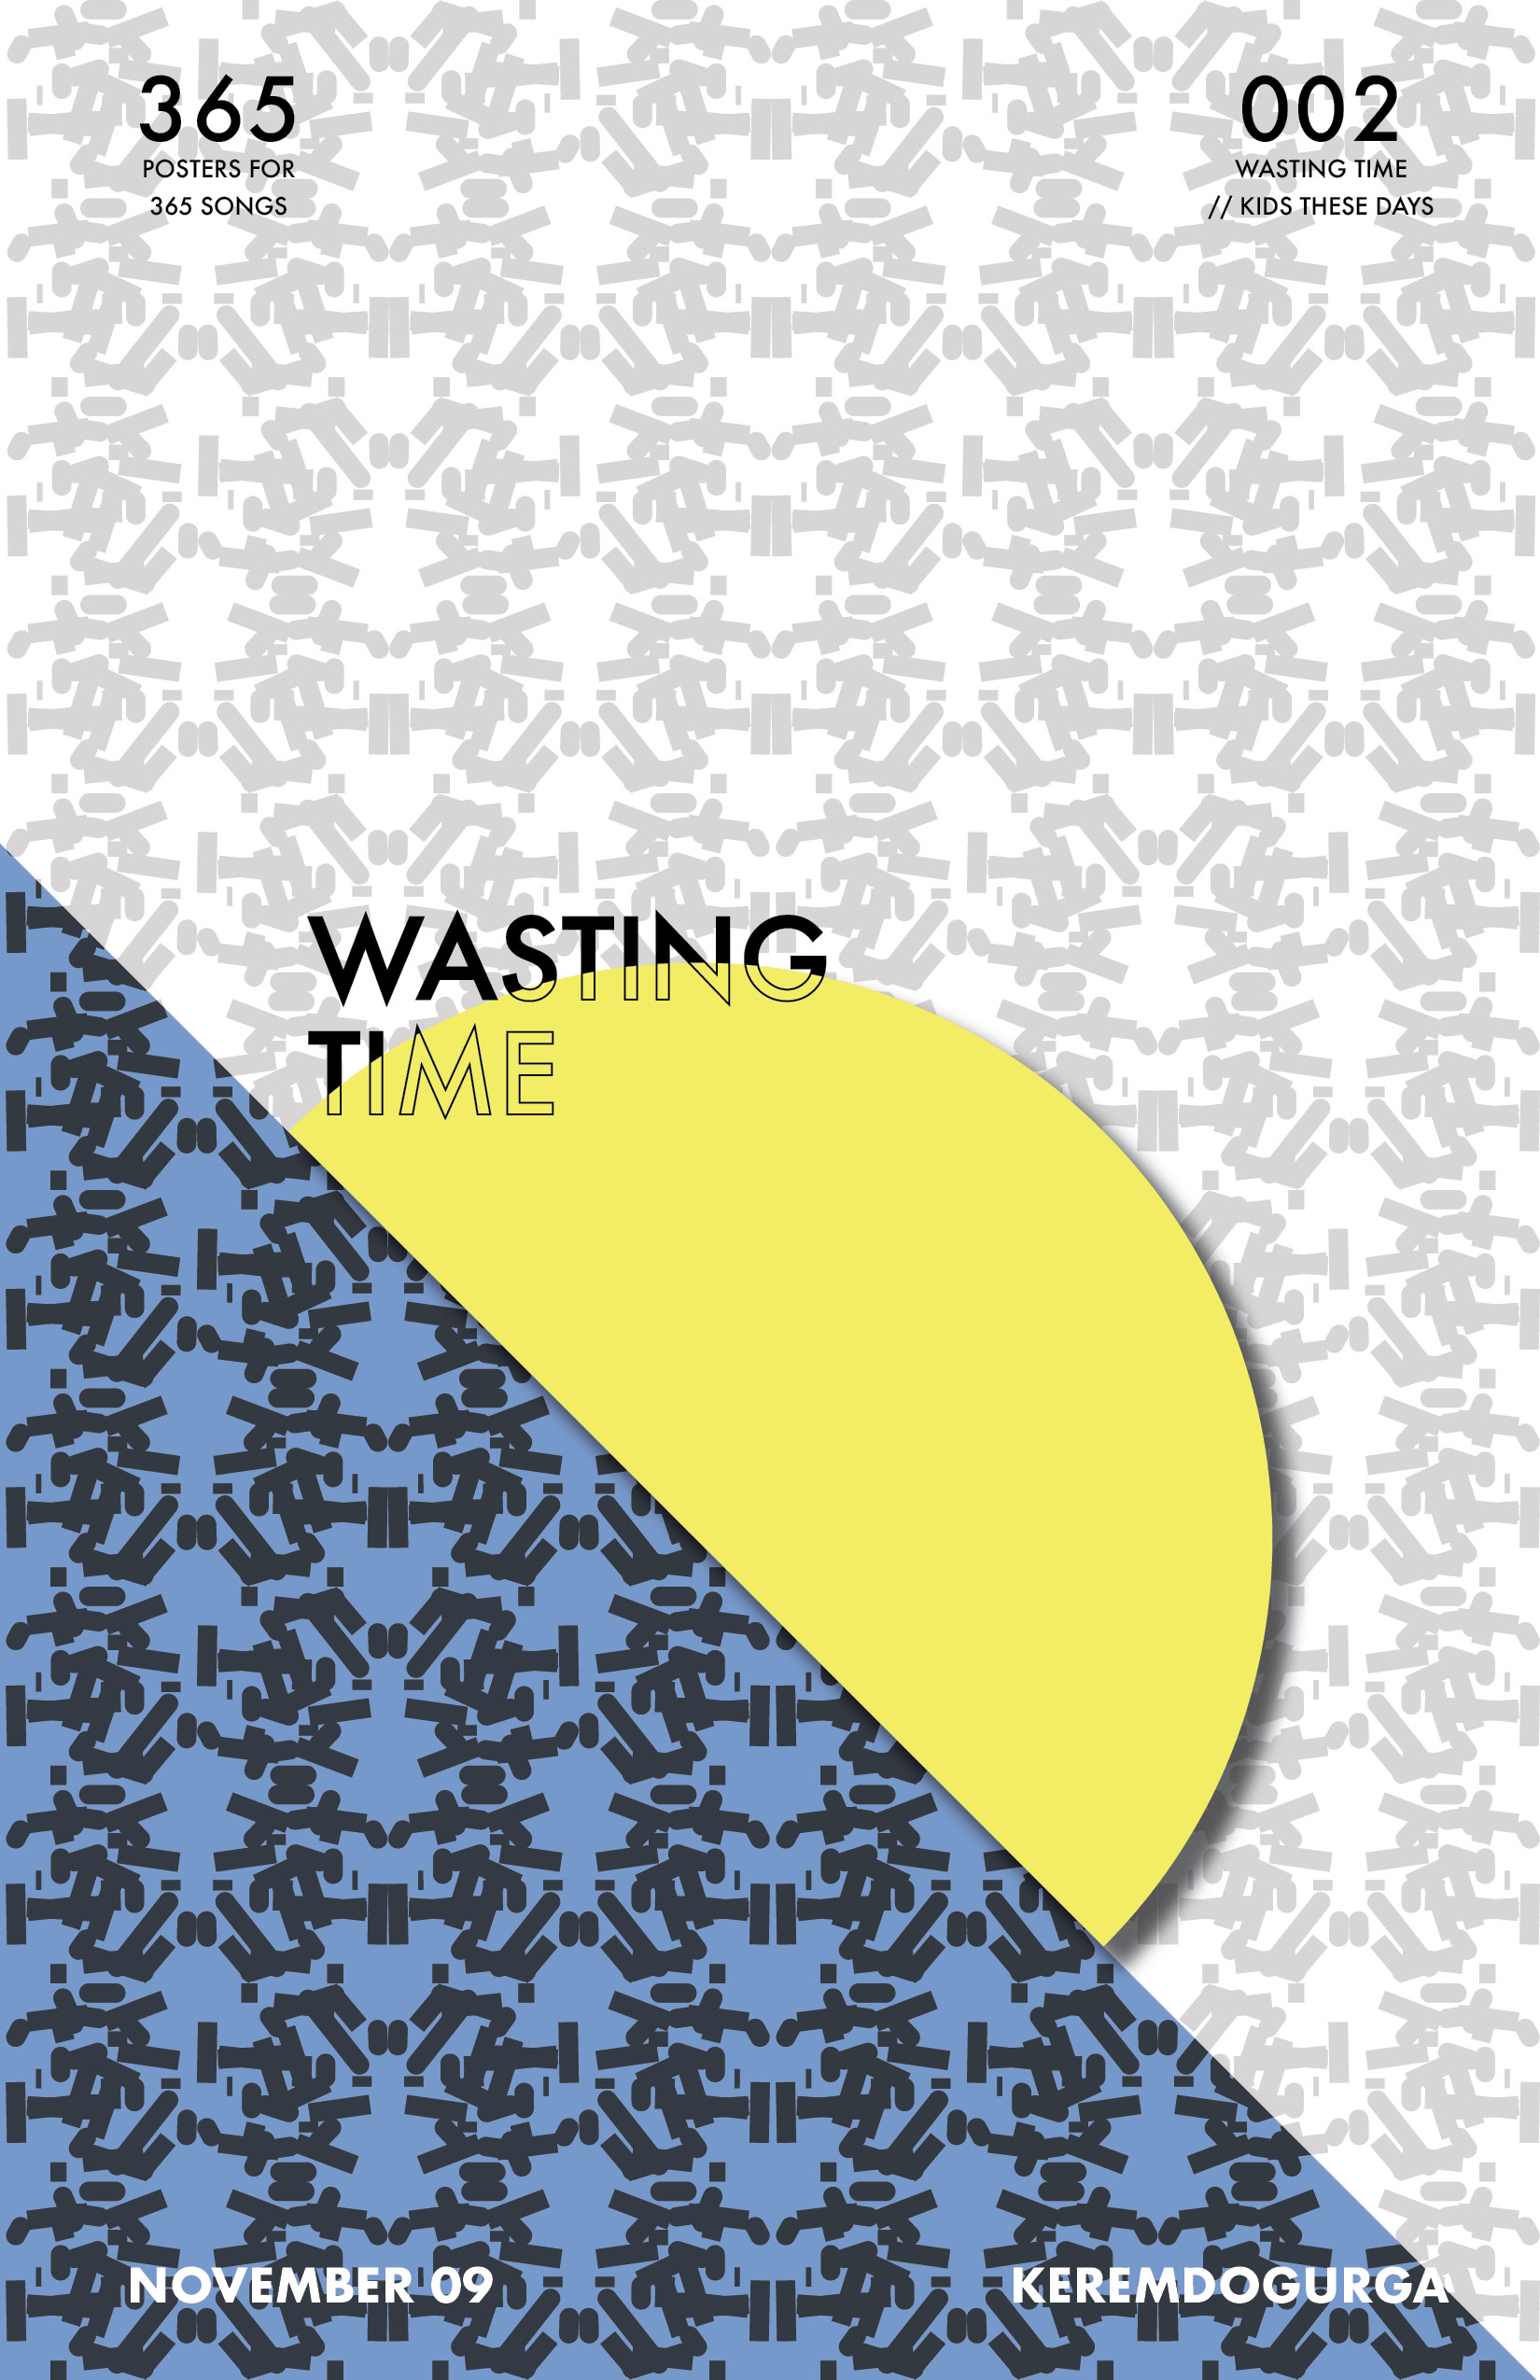 002 Wasting Time // Kids These Days